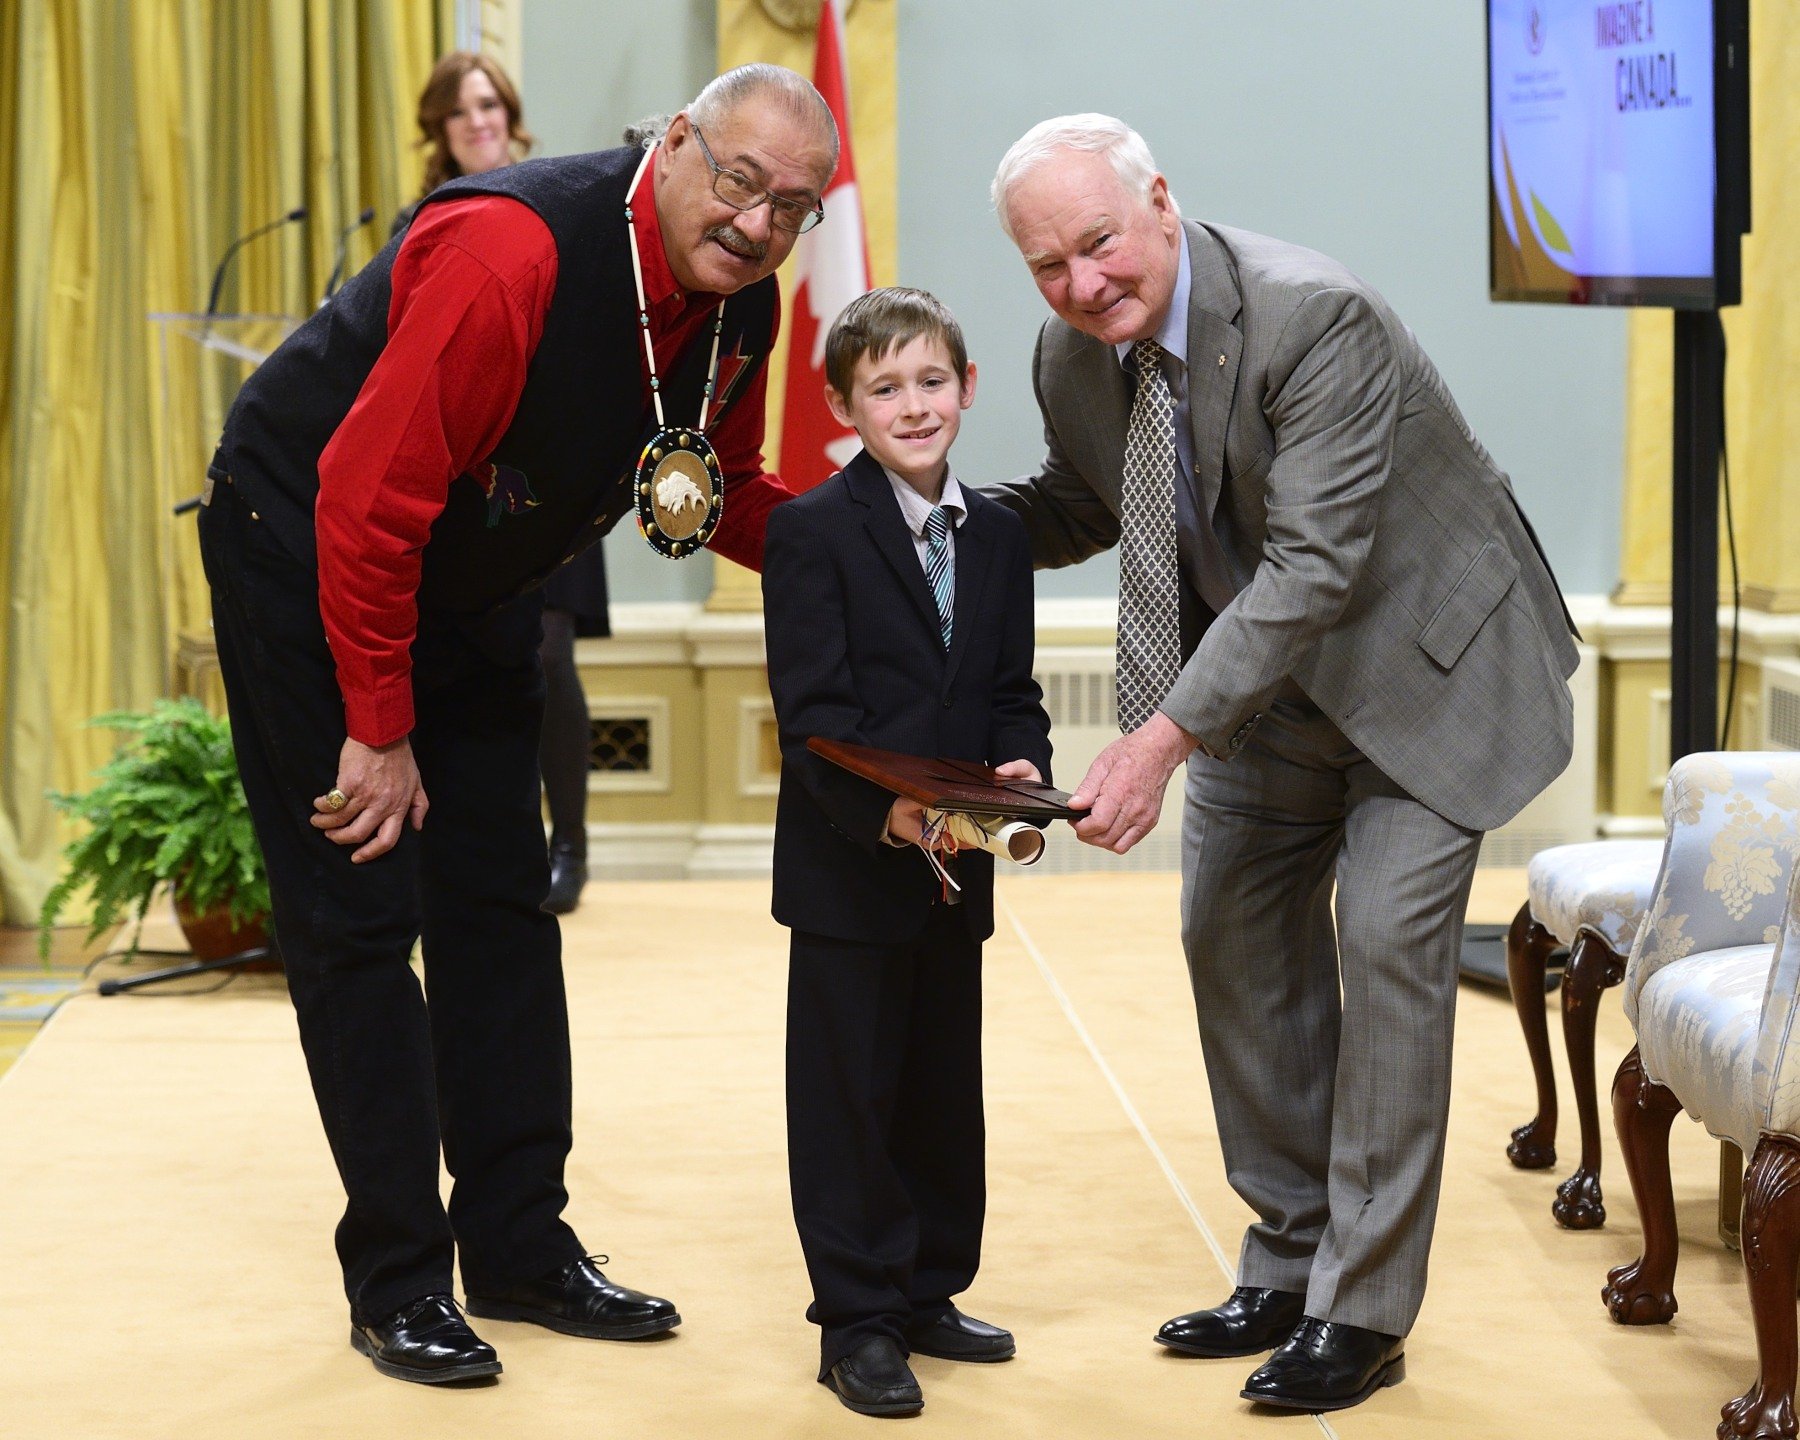 The Governor General and Mr. Arcand offered warm congratulations to Josiah Ferguson, a grade 3 student from Langley, British Columbia.